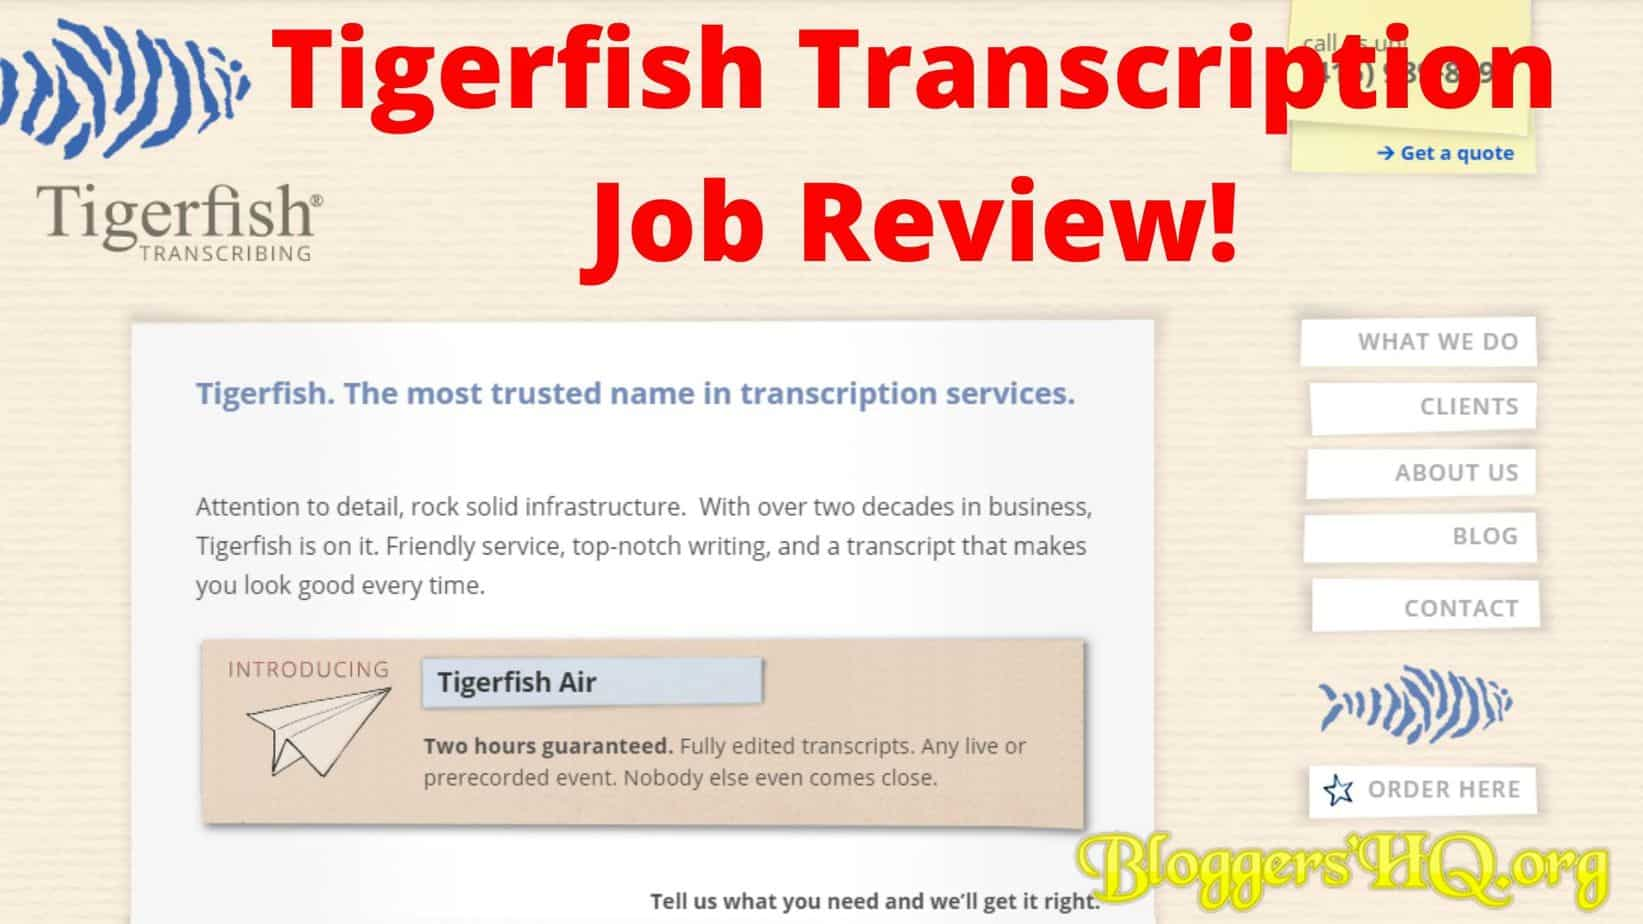 igerfish Transcription Job Review